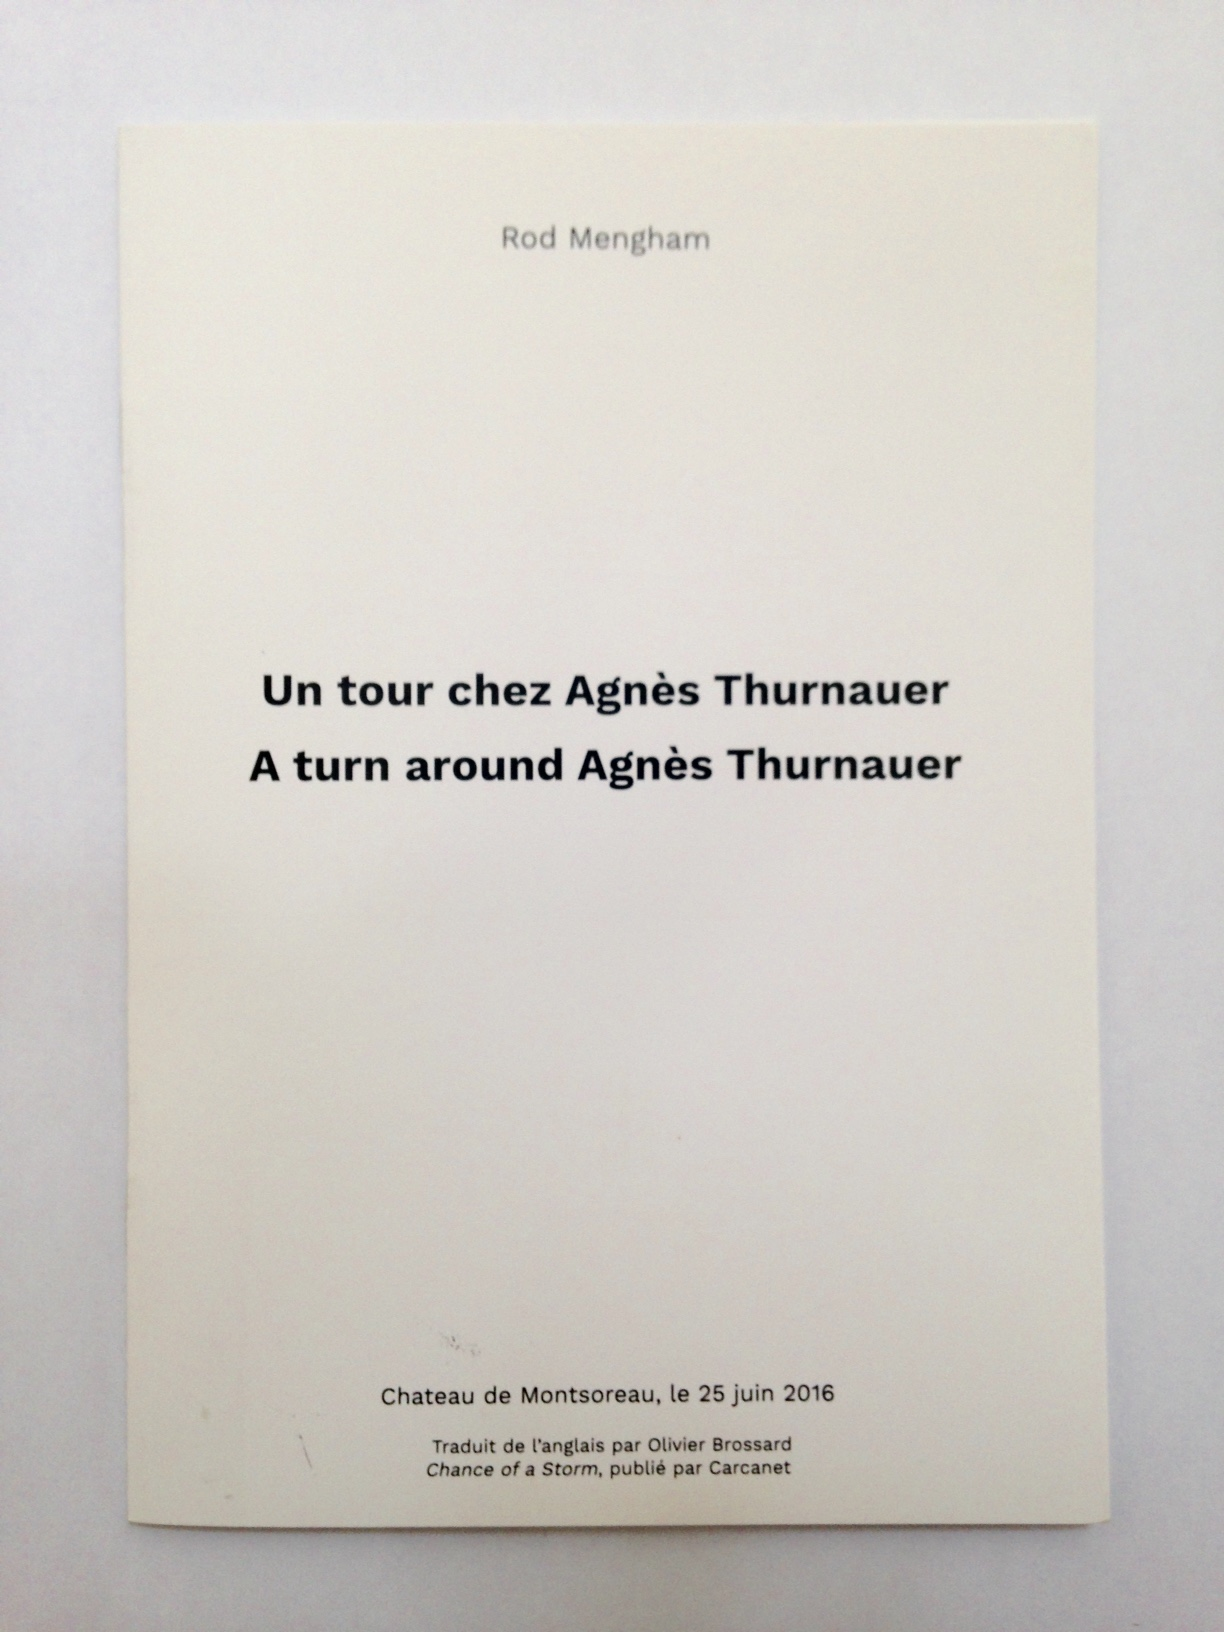 Representation of A turn around Agnès Thurnauer